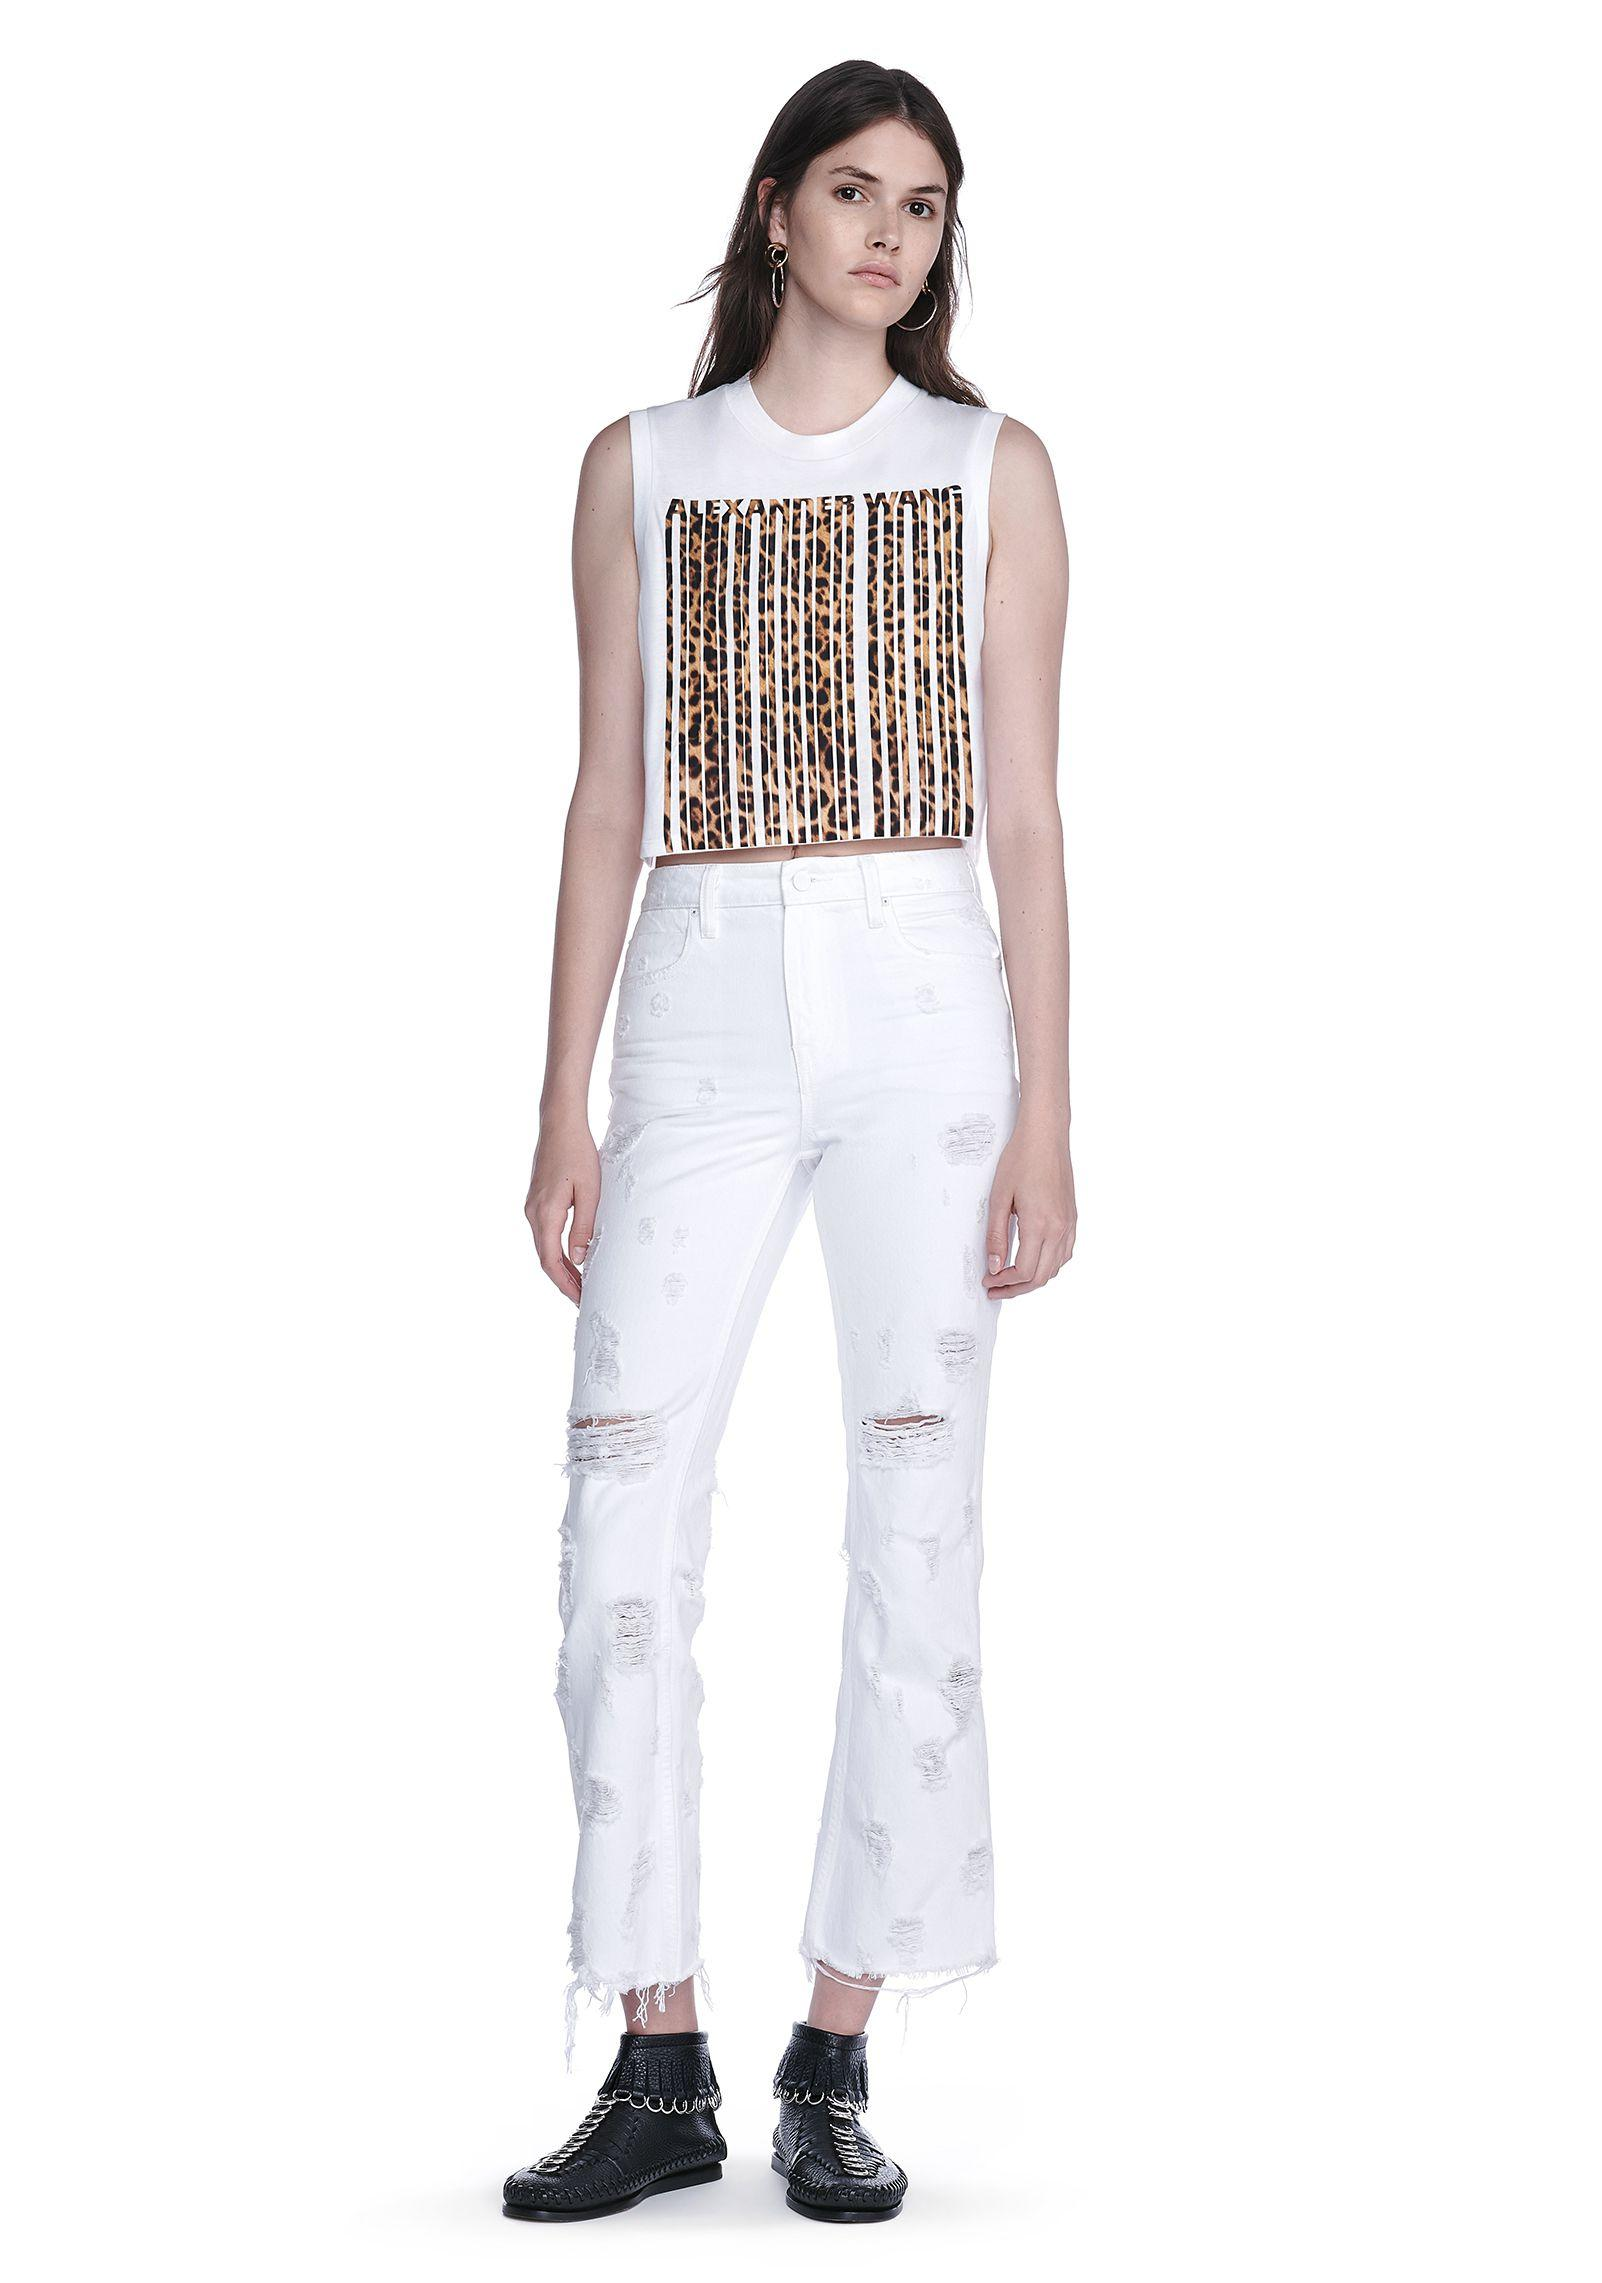 76dc39b8849a Alexander Wang Leopard-Print Bonded Barcode Crop Top in White - Lyst